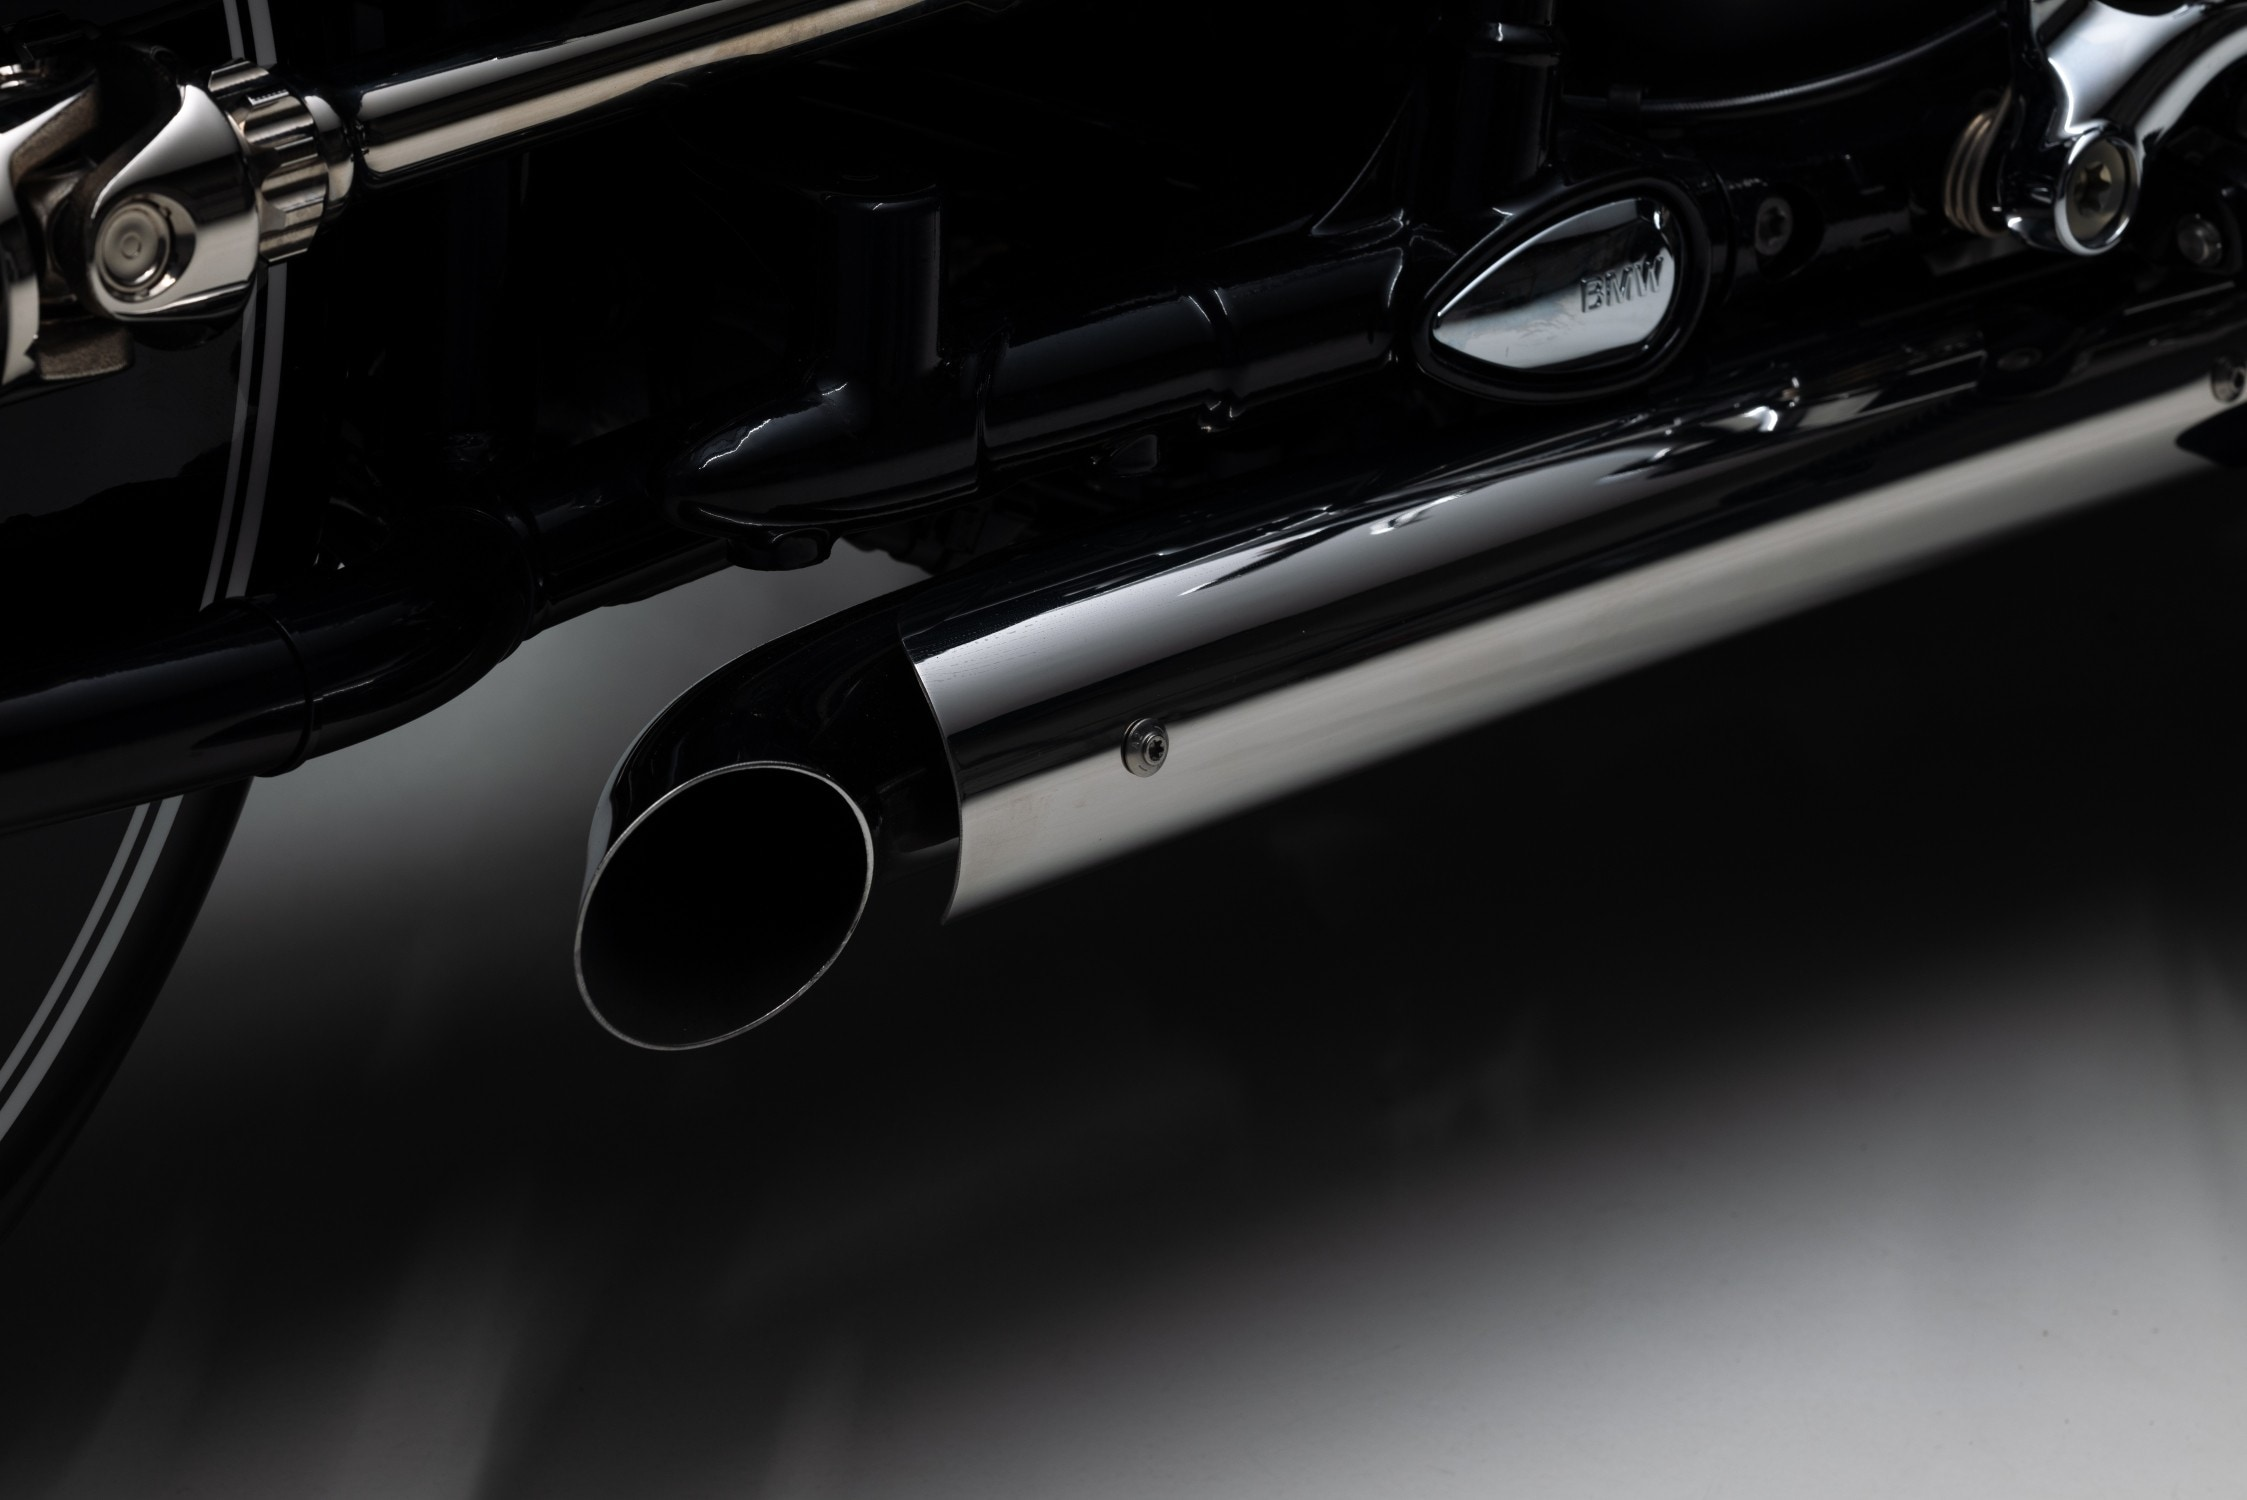 The exhaust has been modified in Kingston Roadster style, while the seating is also custom made using a range of universal accessories.